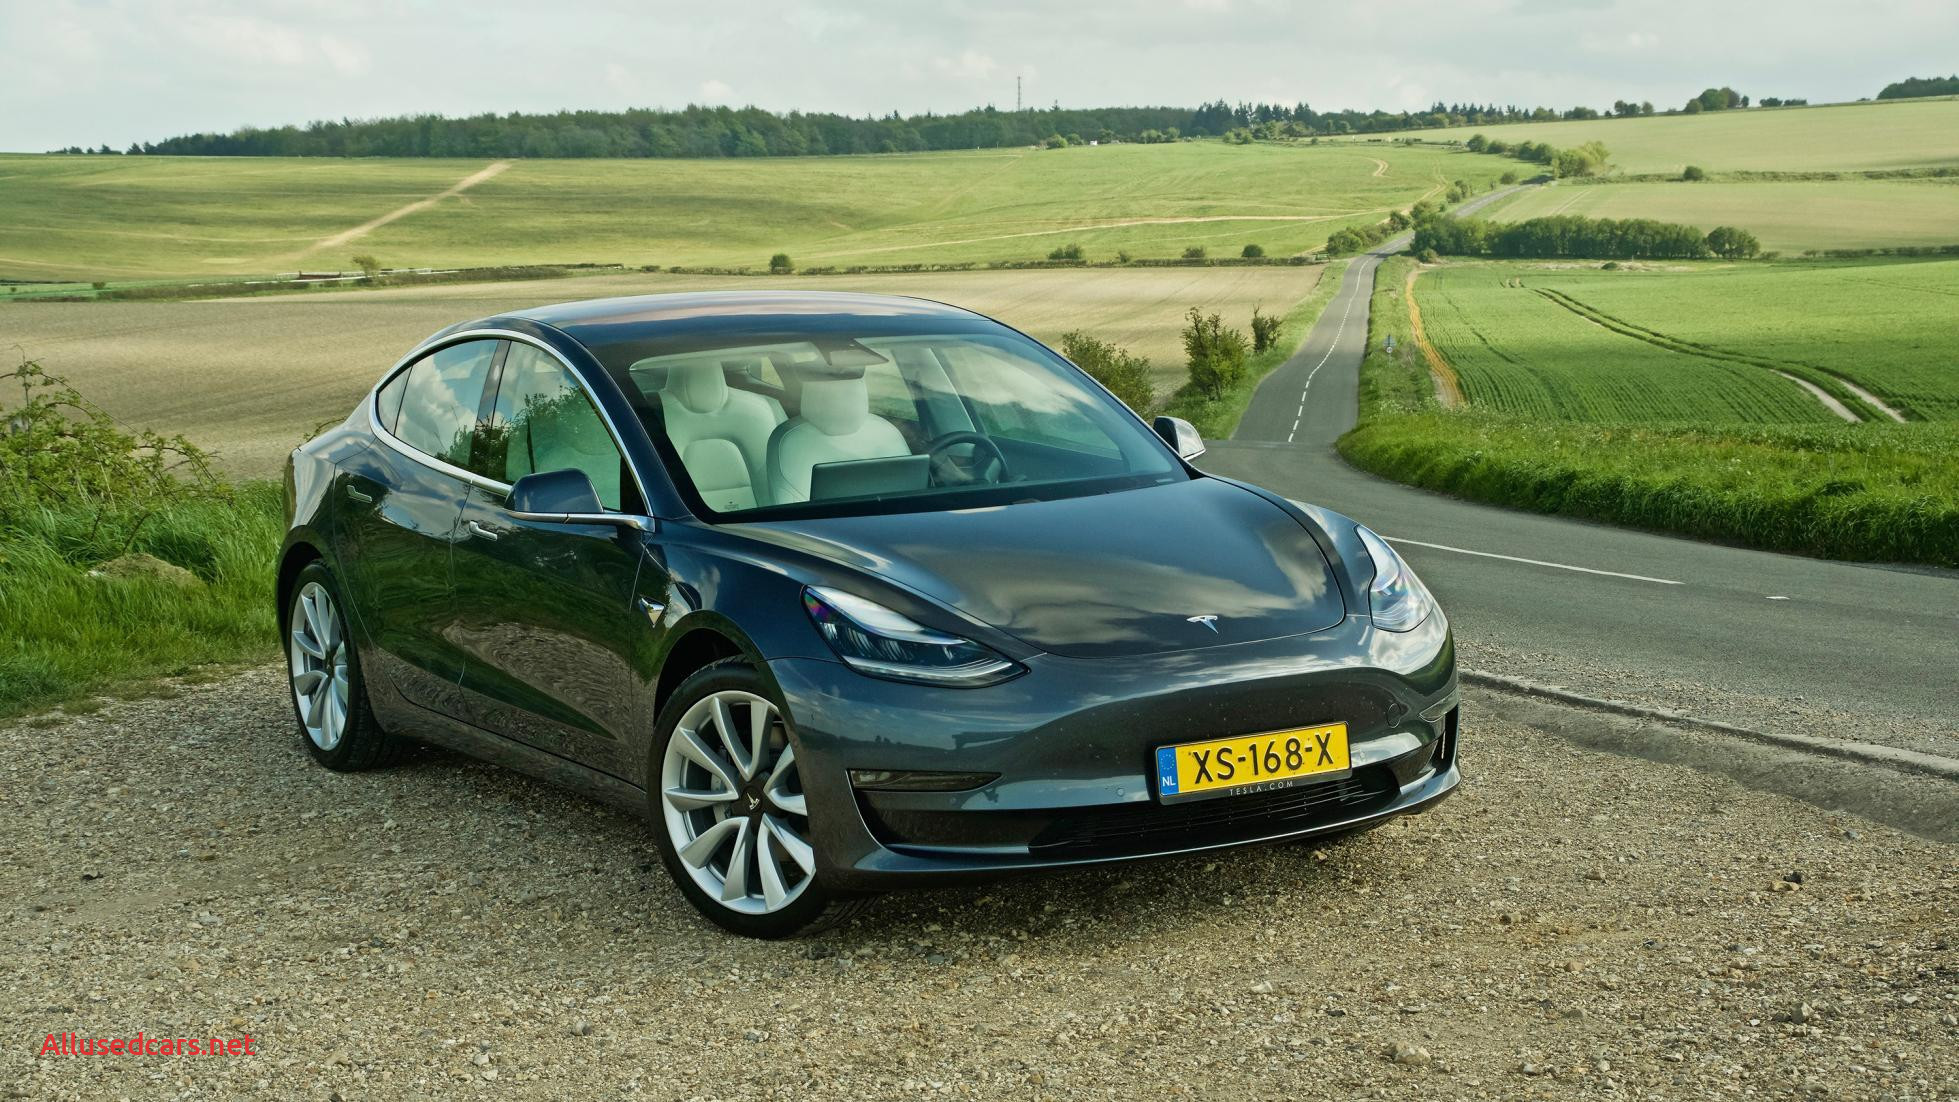 Tesla 3 Luxury the Fastest Charging Car In the World the Tesla Model 3